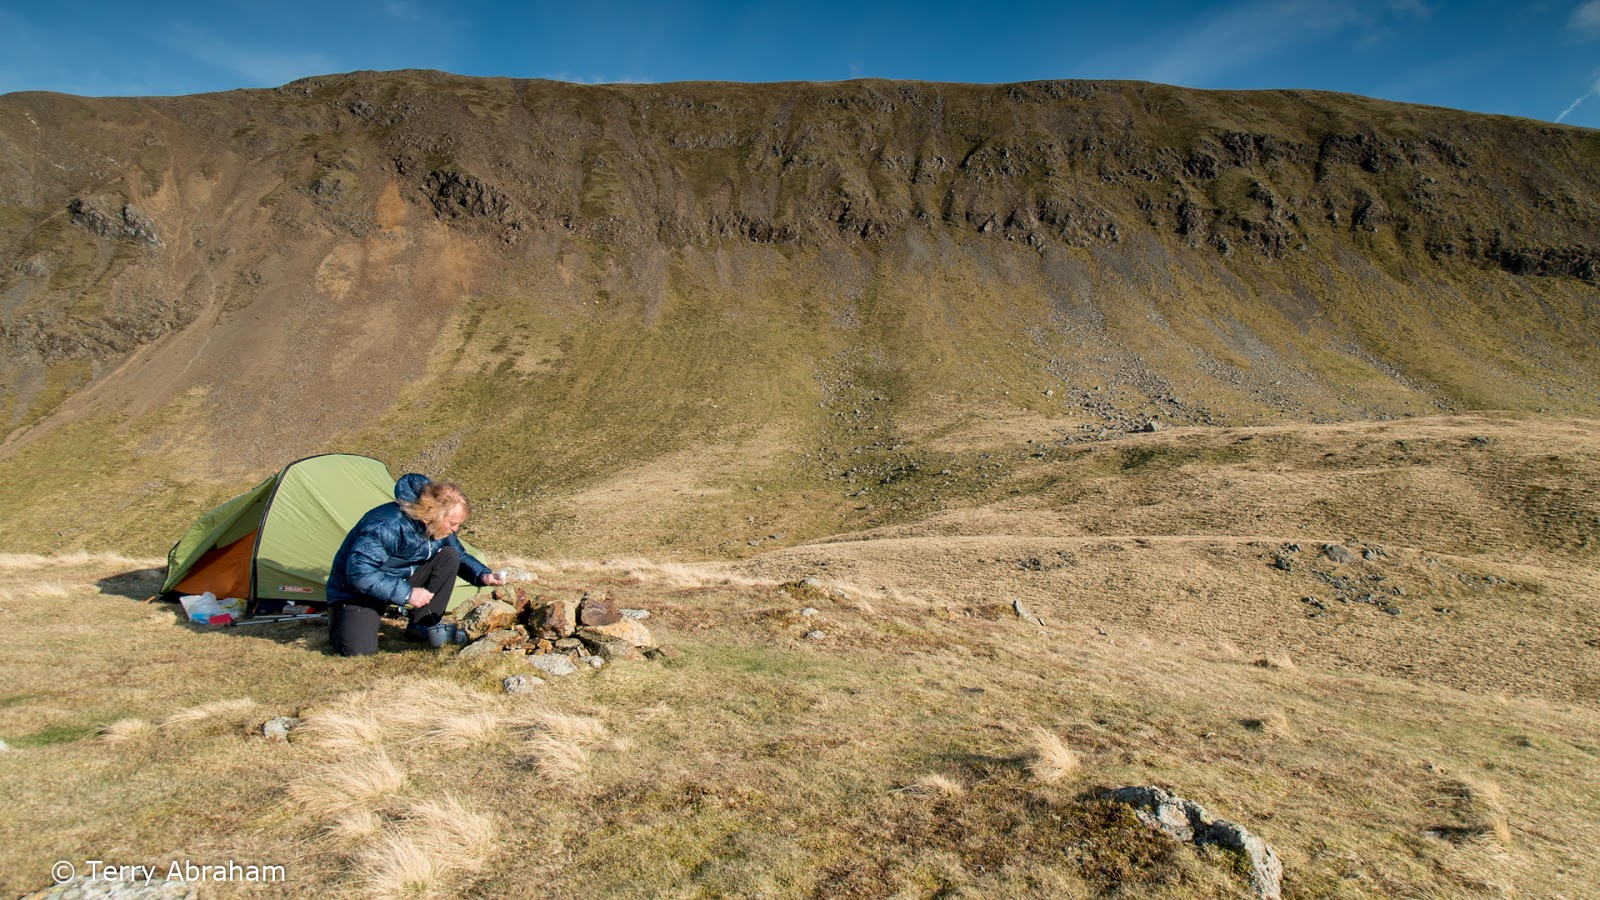 Terry Abraham: Epic Lake District trip report - 'Life of a ...